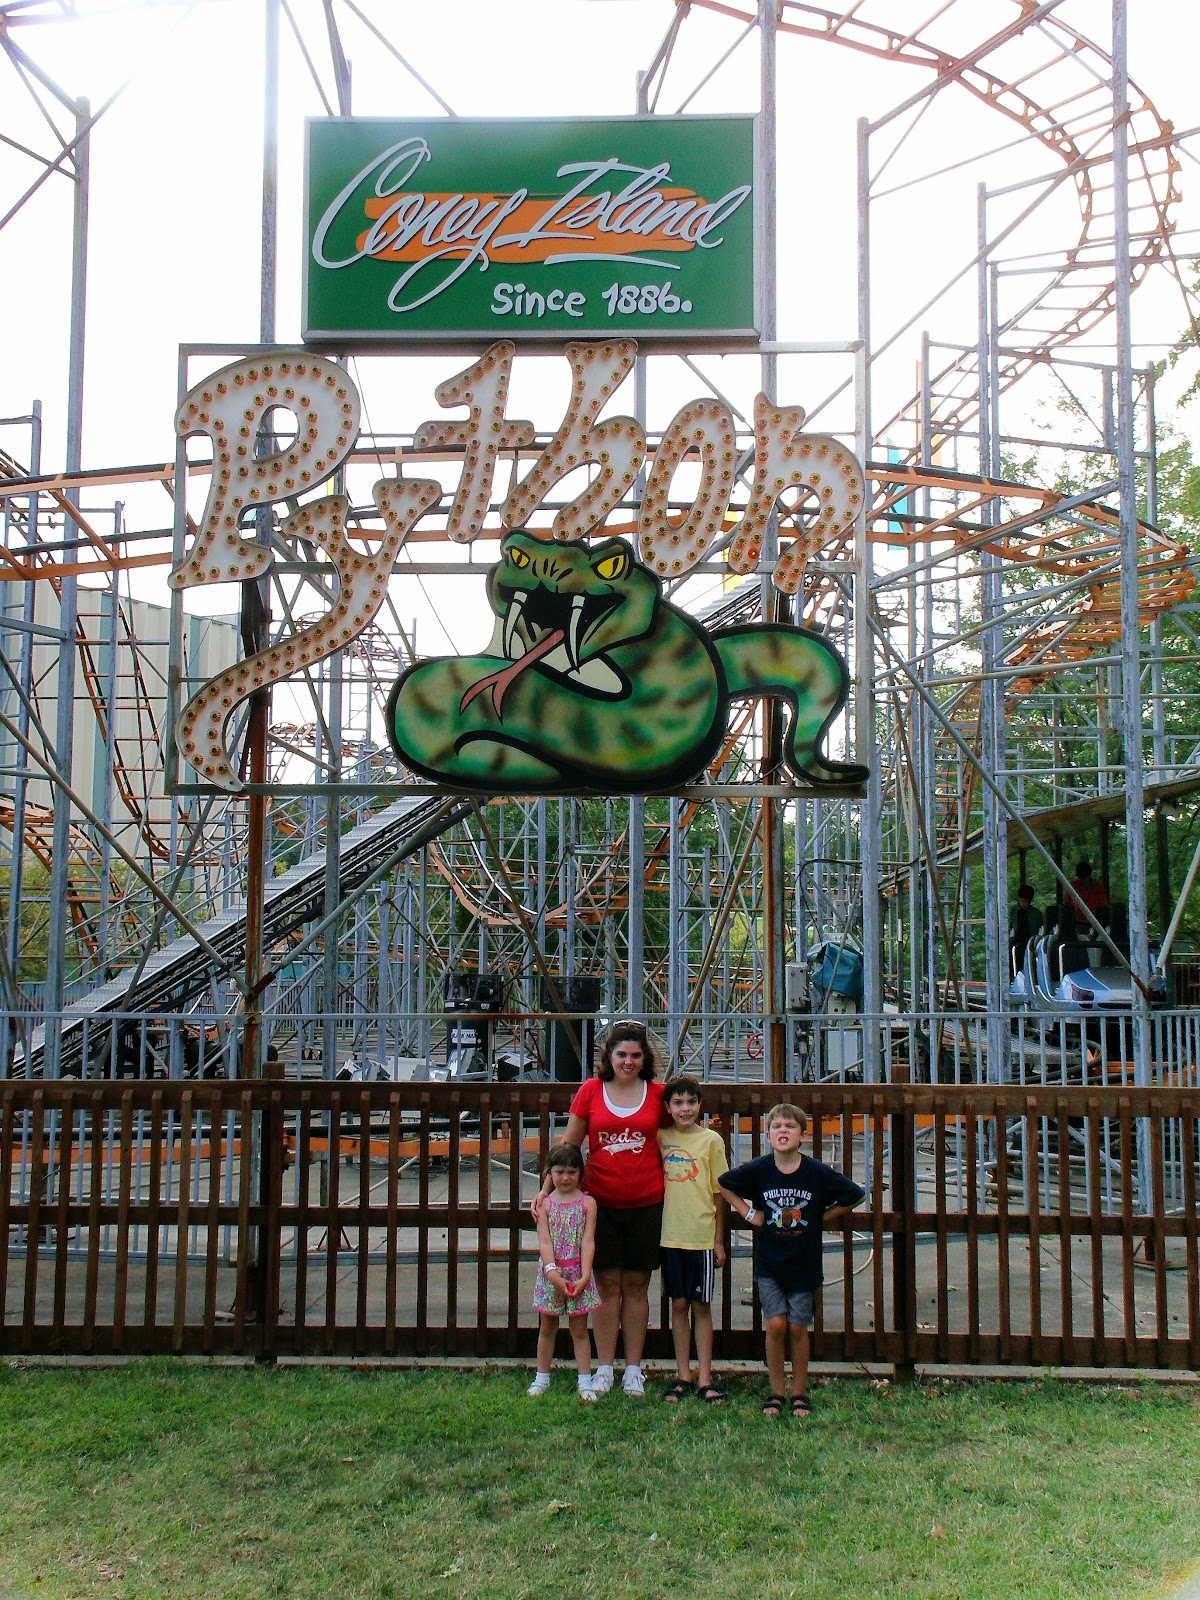 Barnette Family Happenings: Coney Island